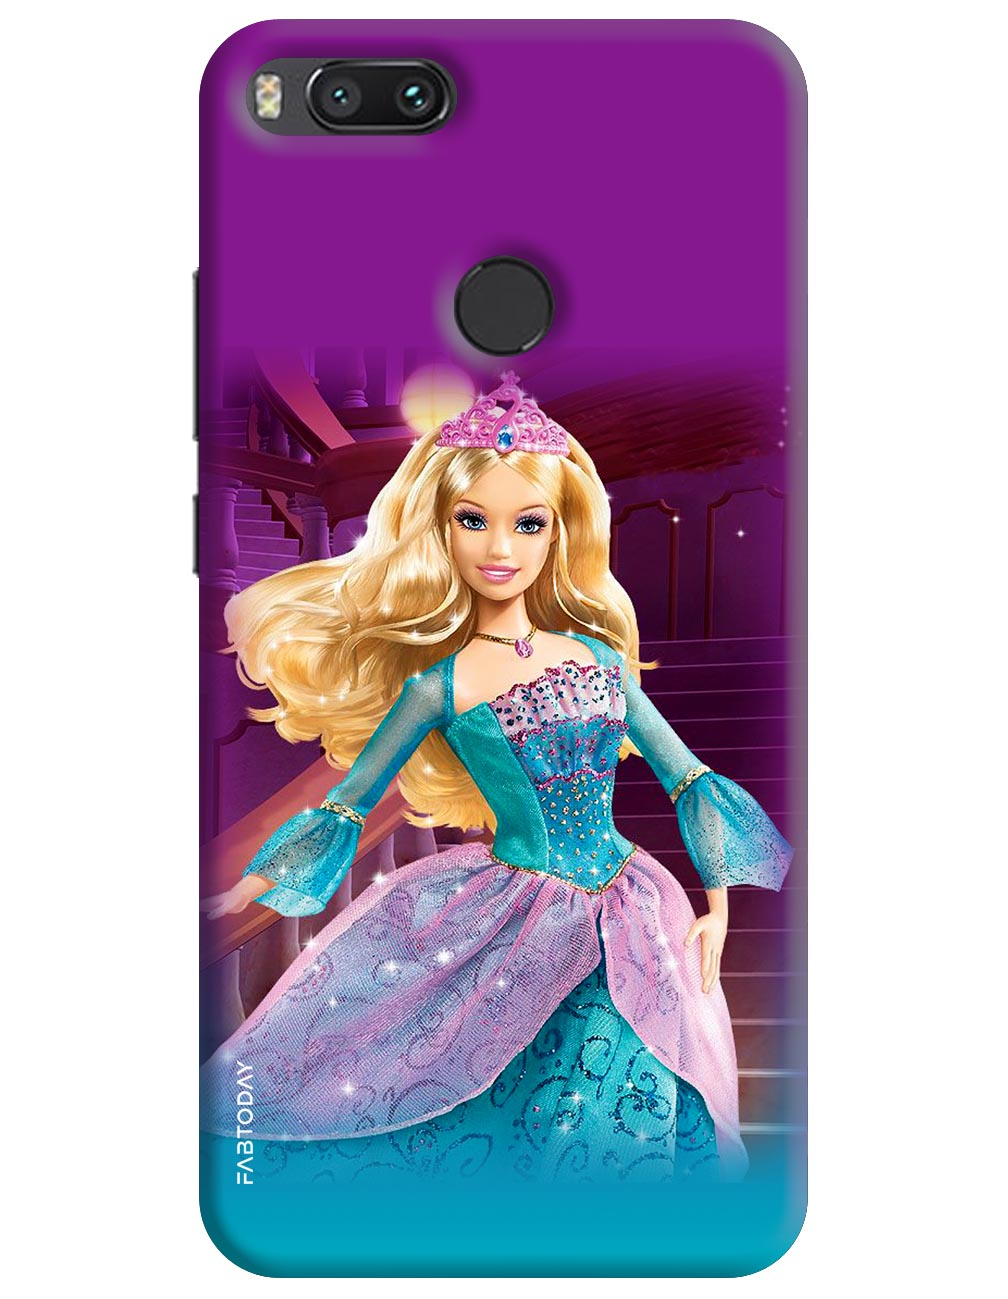 Barbie Back Cover for Xiaomi Mi A1